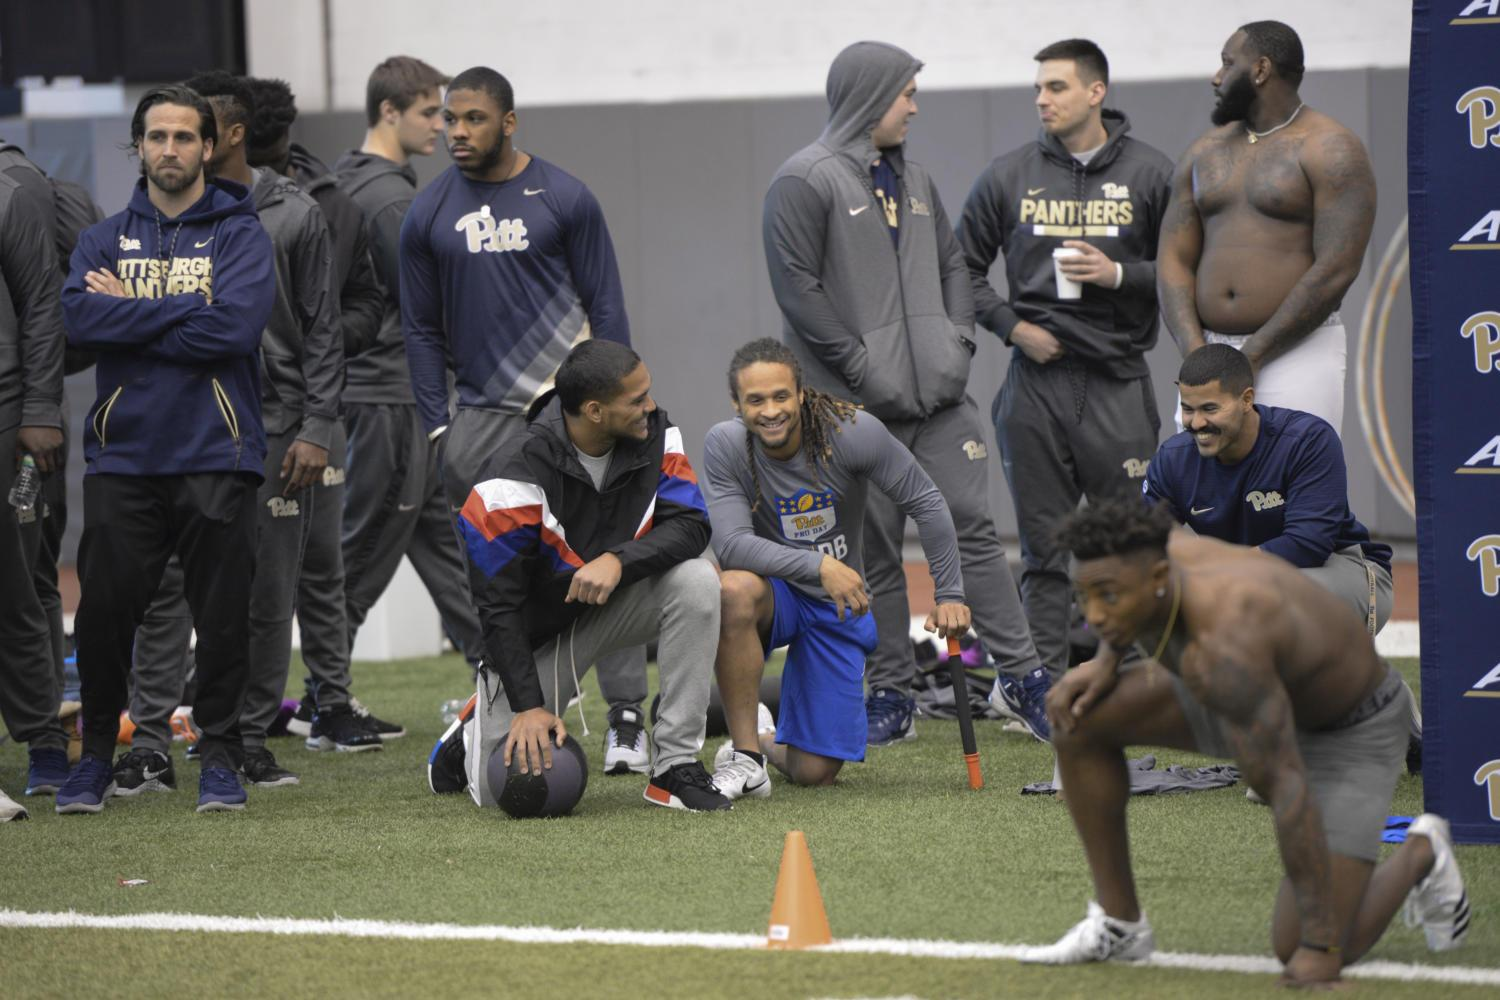 The Pitt football team casually stands around and spectates teammates undergoing various tests in the UPMC Rooney Sports Complex. (Photo by Mackenzie Rodrigues | Contributing Editor)